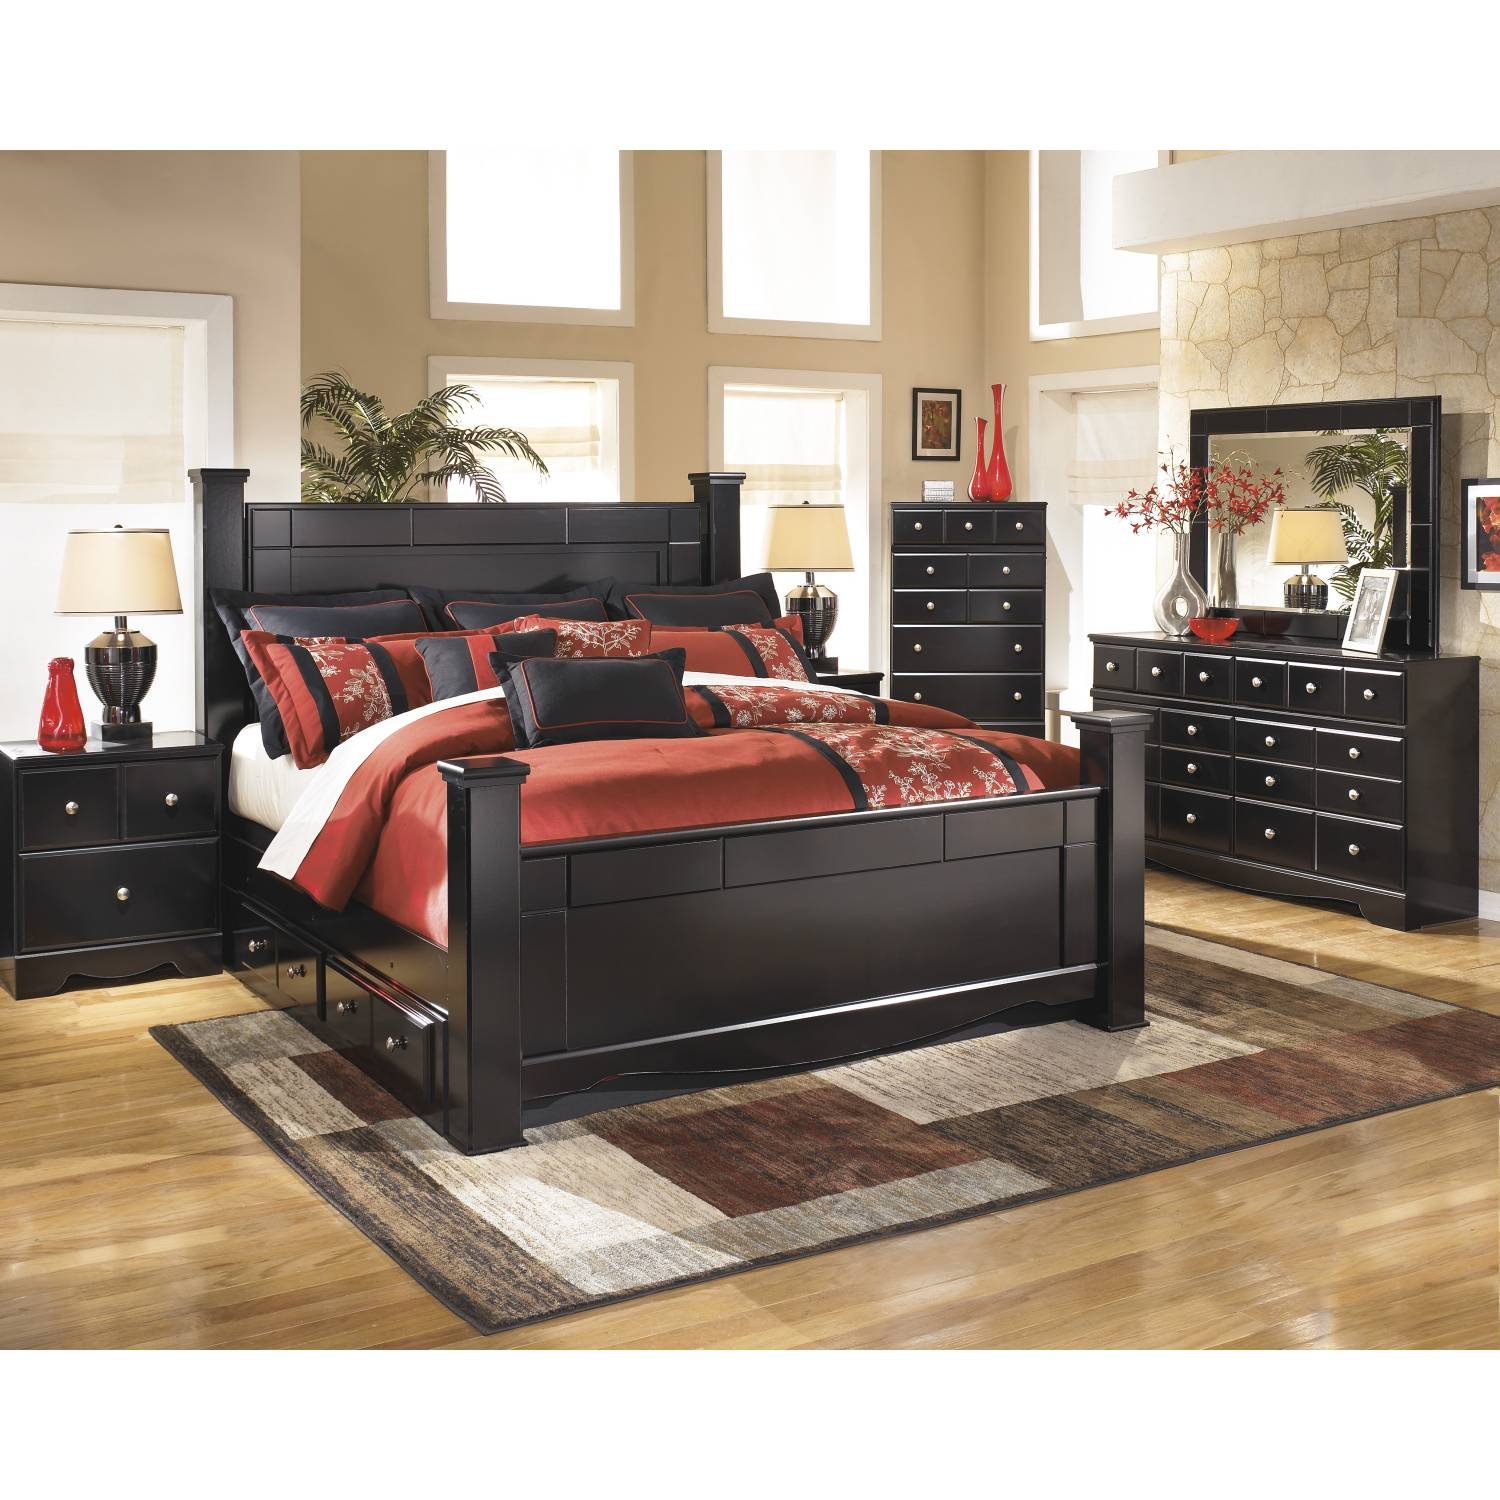 B271 Shay King Poster Under Bed Storage Bedroom Sets 4 Piece